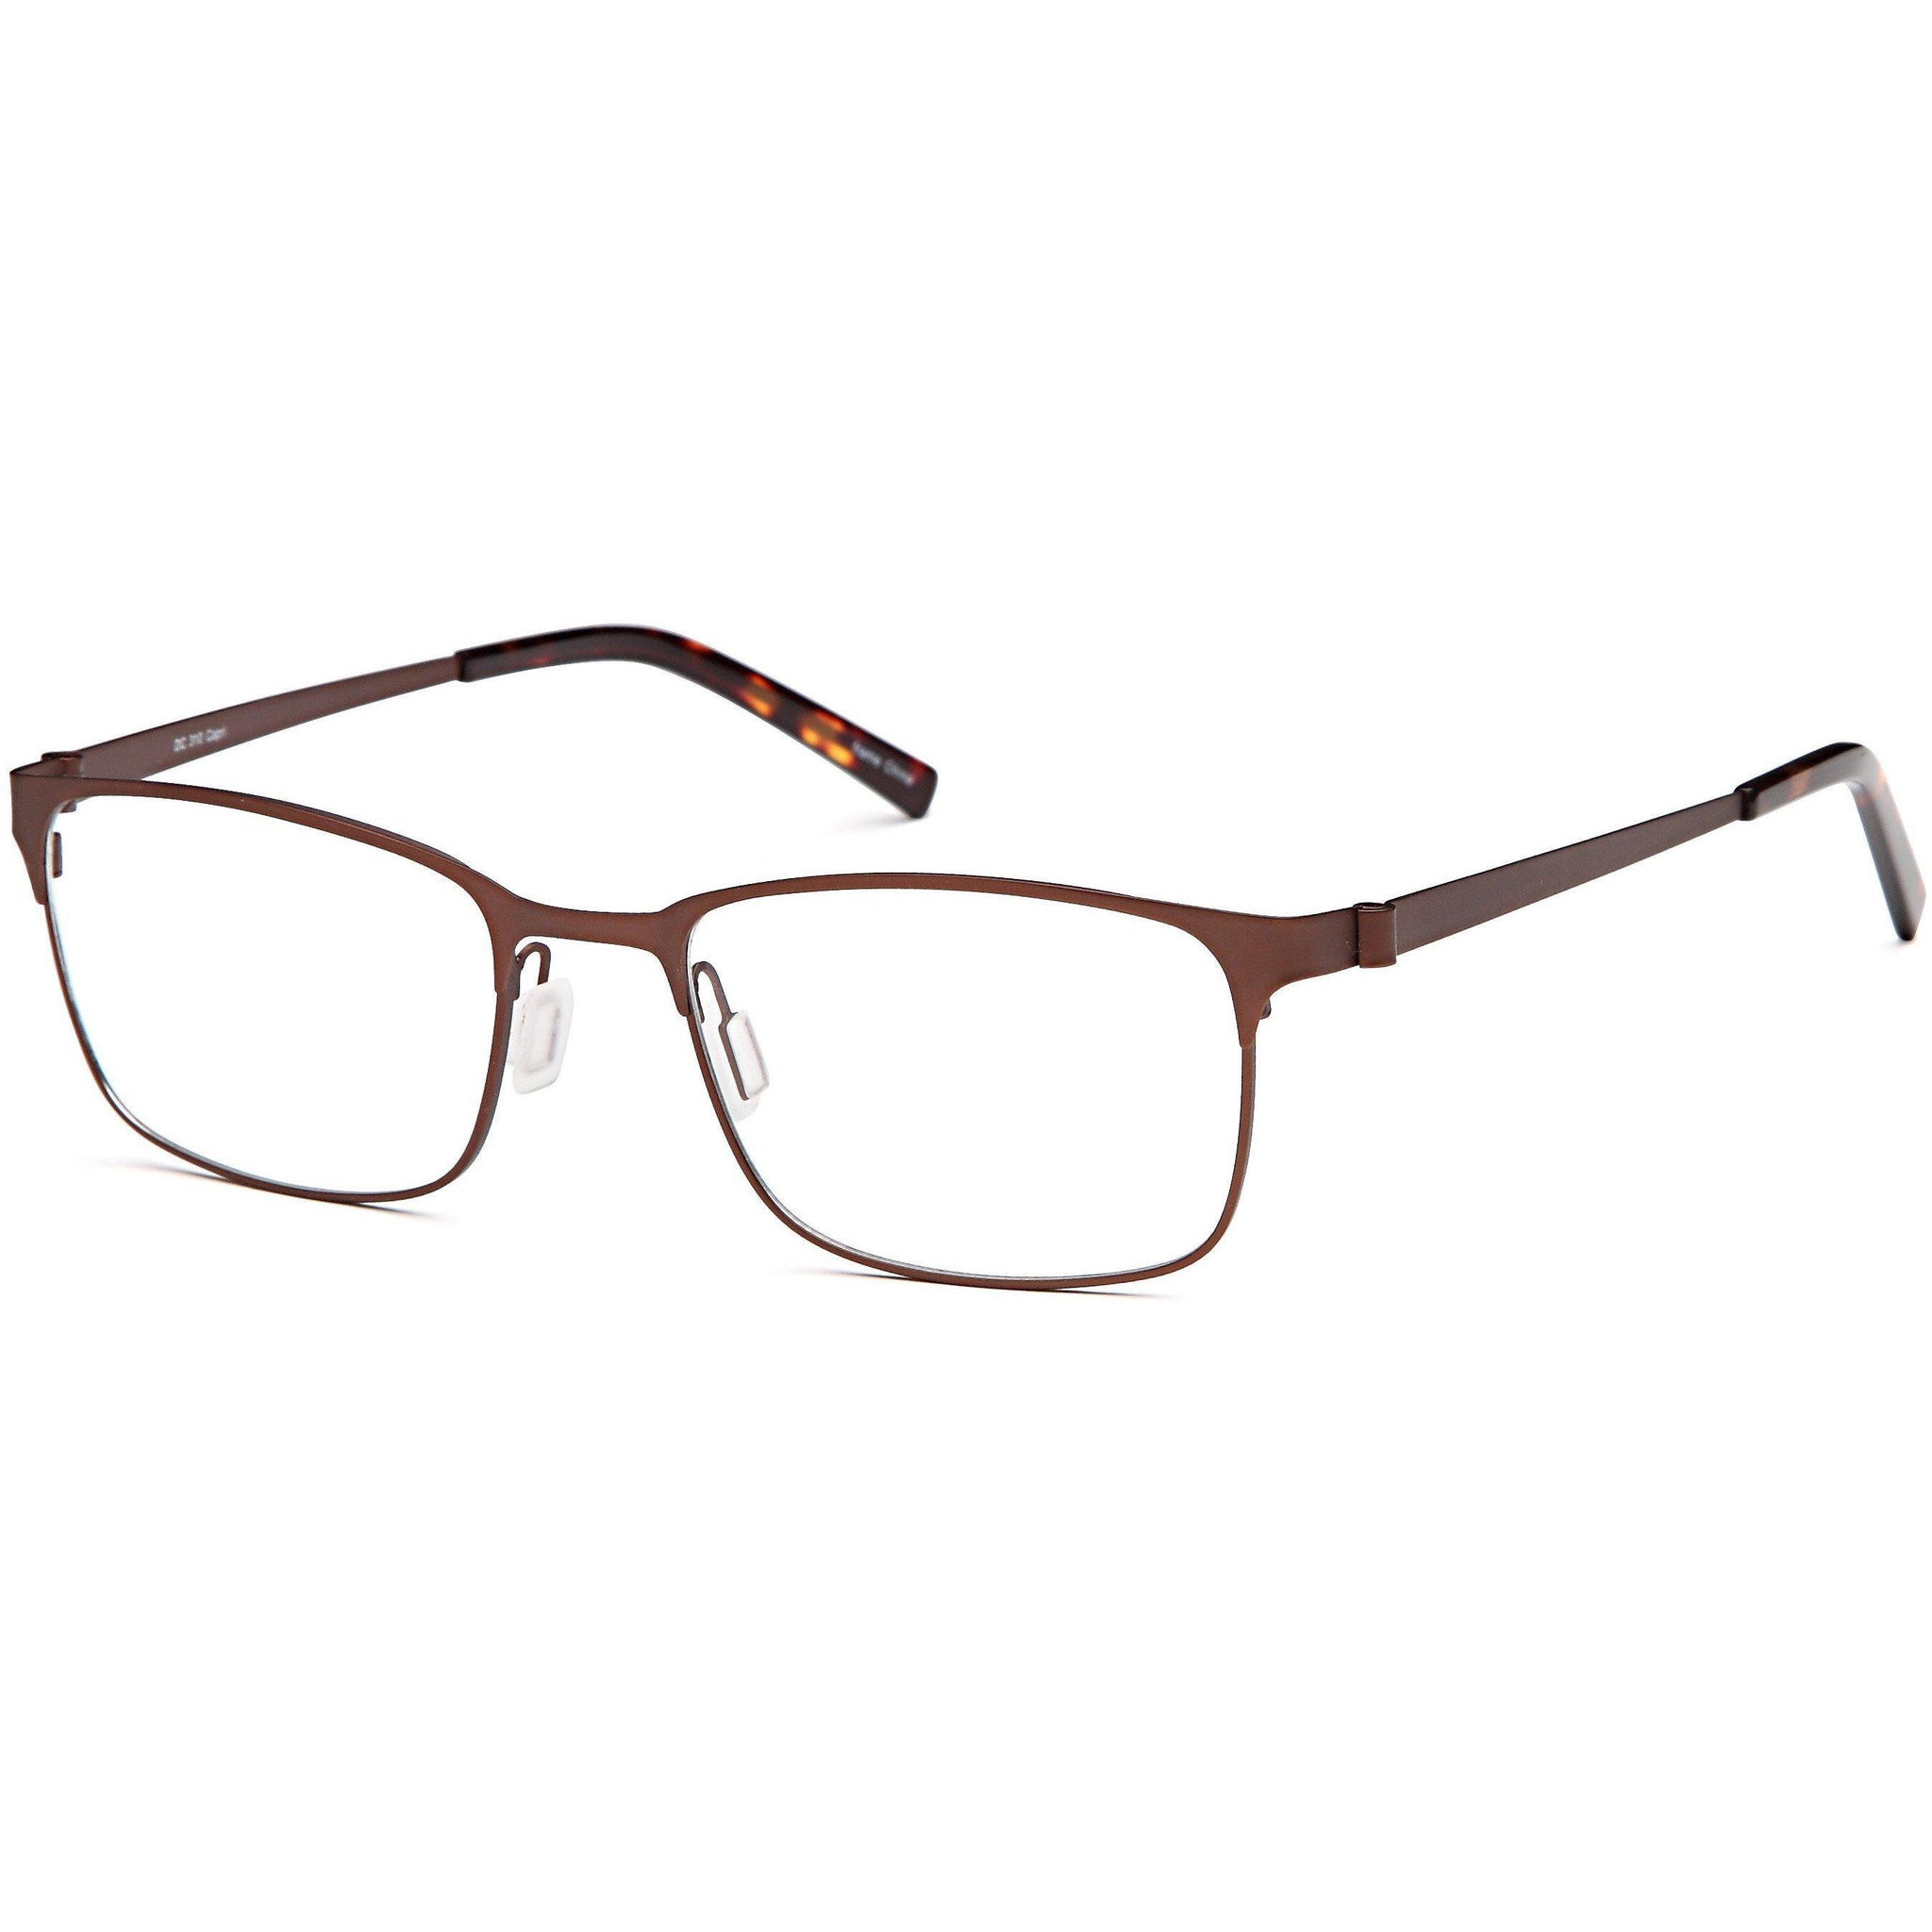 Di Caprio Prescription Glasses DC 310 Eyeglasses Frame - timetoshade